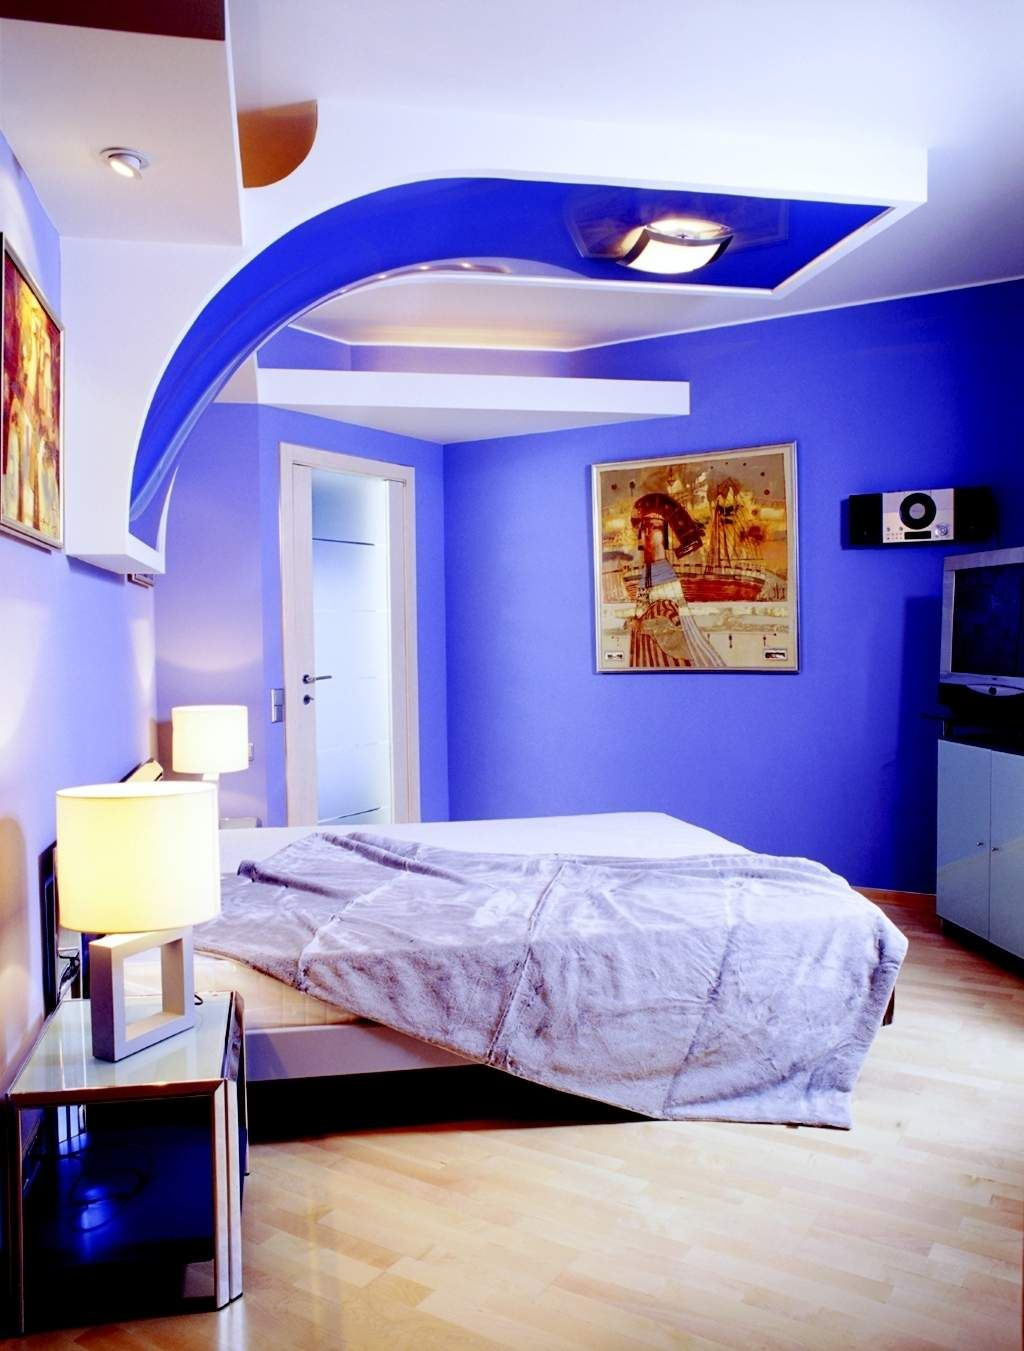 Bedroom Colors Kids Bedroom Futuristic Design Of Boys Bedroom In Bright Blue And